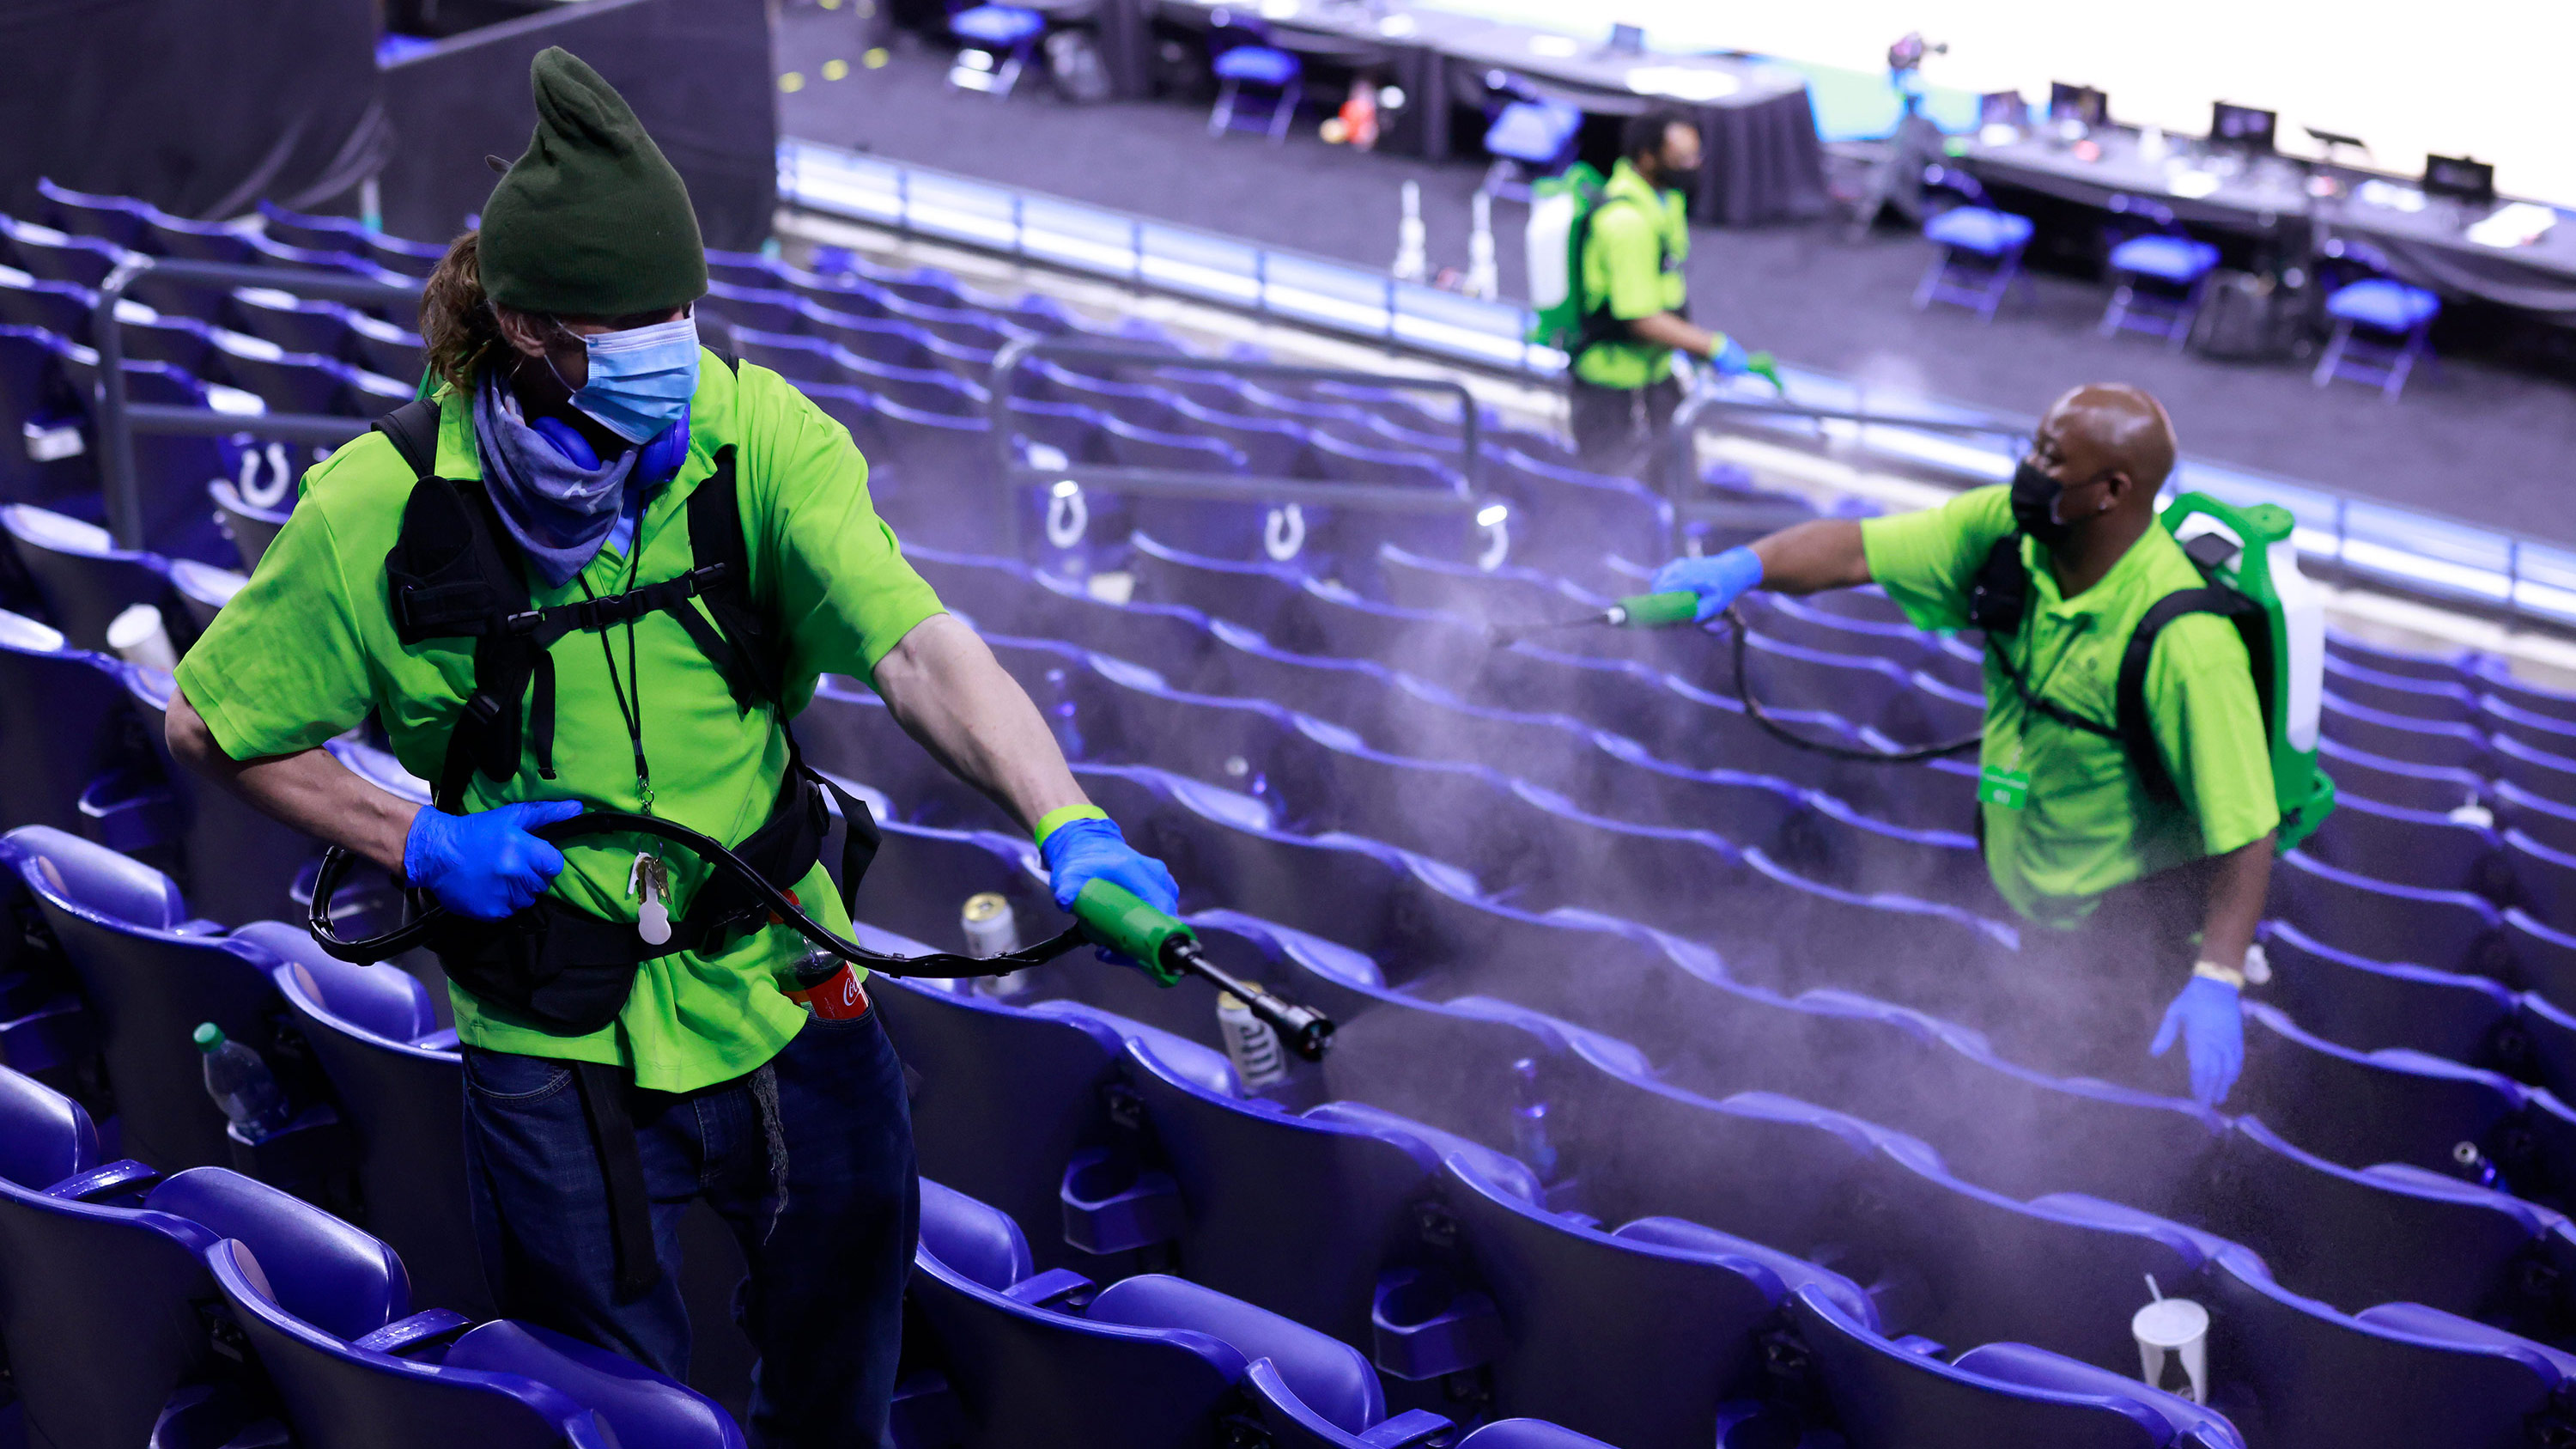 Employees disinfect seats ahead of a Purdue Boilermakers and Ohio State Buckeyes basketball game at Lucas Oil Stadium in Indianapolis, Indiana, on March 12.